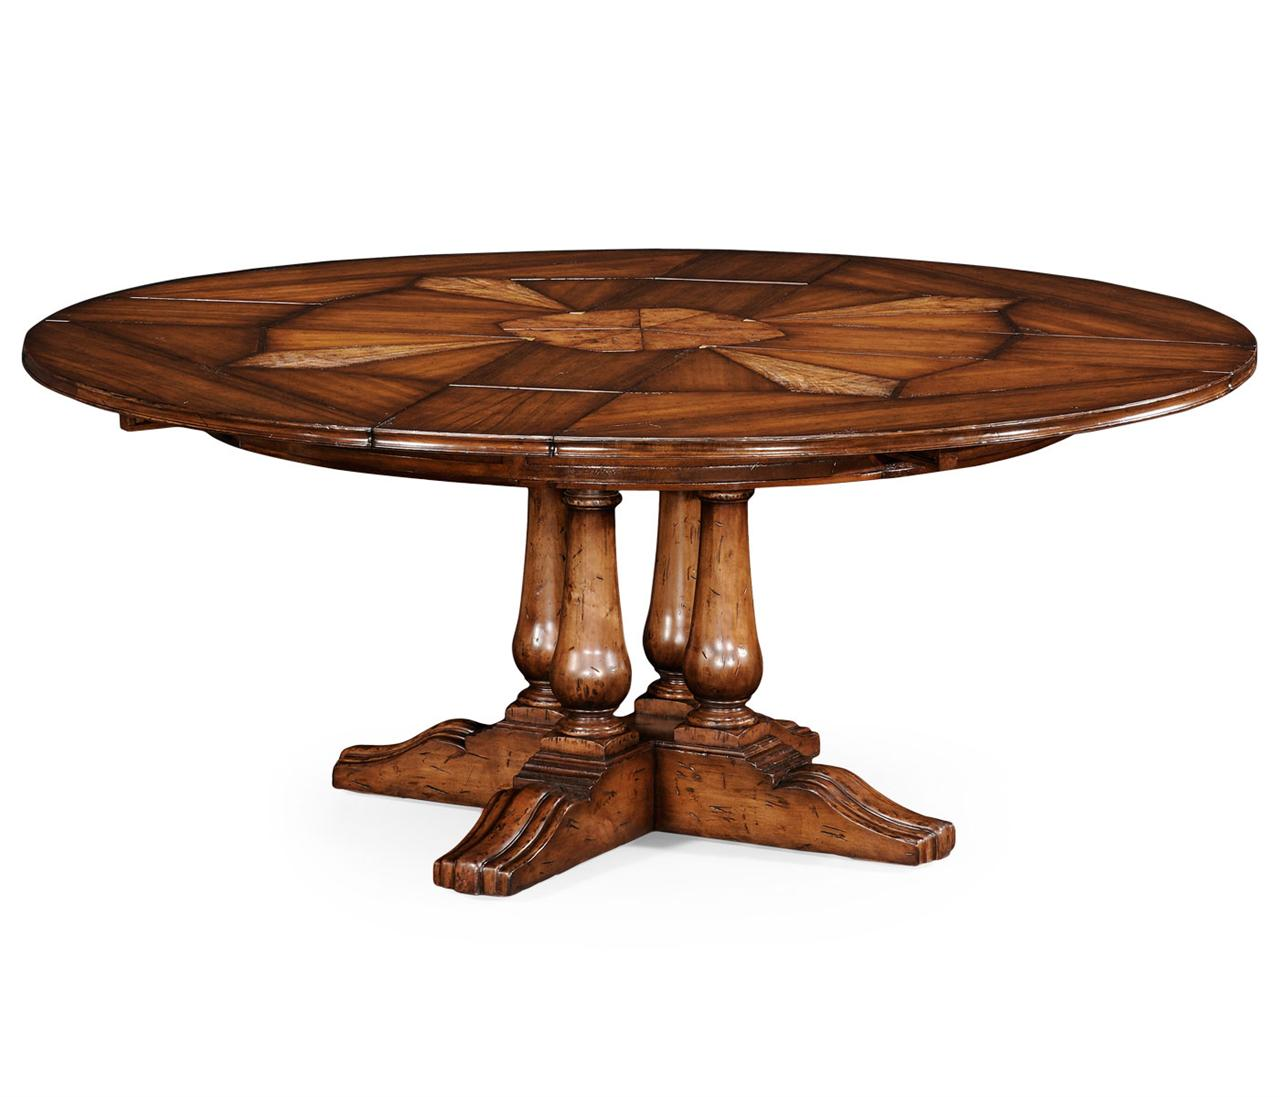 Jupe Table for Sale with Self Storing LeavesRound Dining  : 59 to 74 round country style dining table with hidden leaves 13632 from www.antiquepurveyor.com size 1280 x 1097 jpeg 89kB